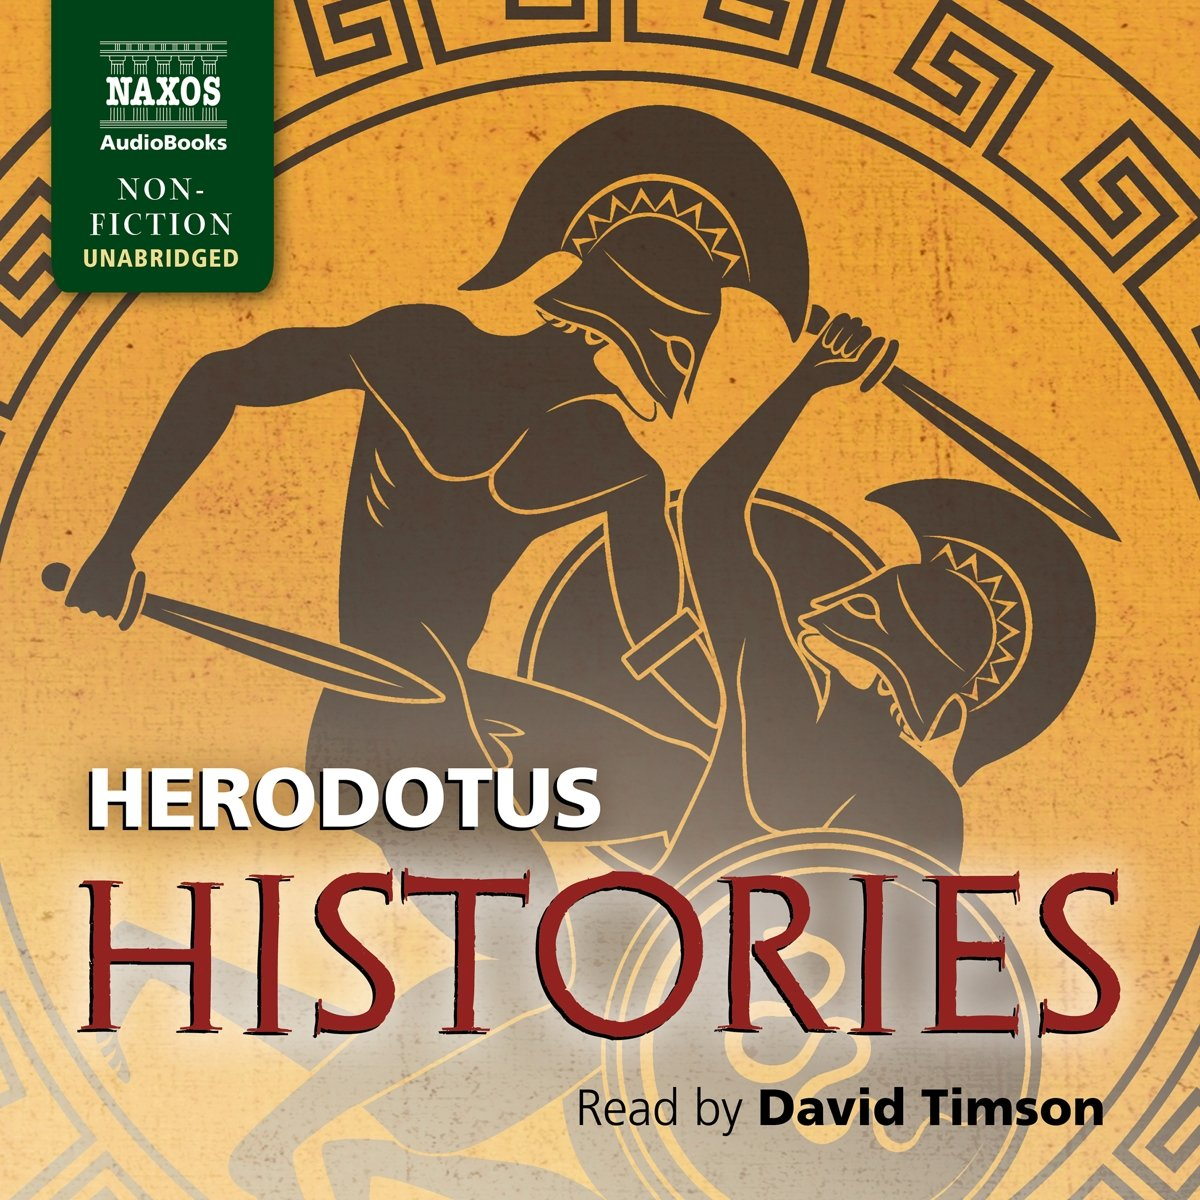 Histories by Naxos AudioBooks